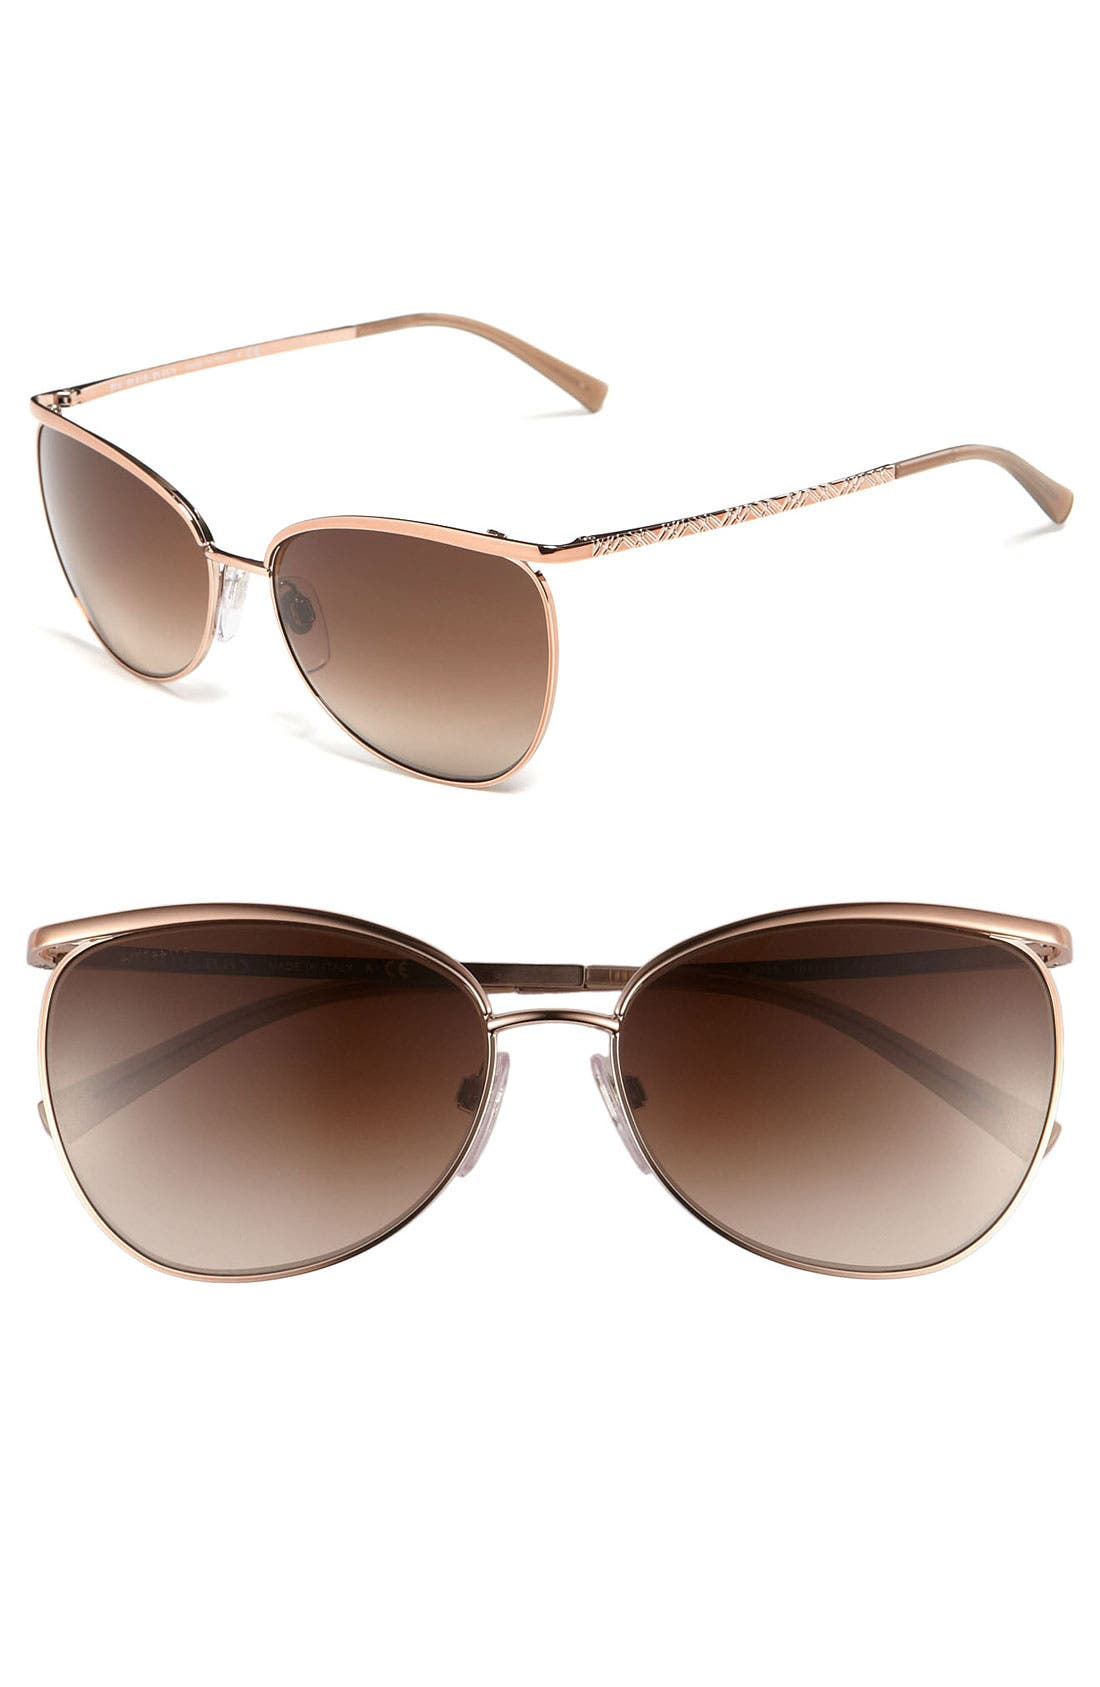 Main Image - Burberry 58mm Metal Cat's Eye Sunglasses